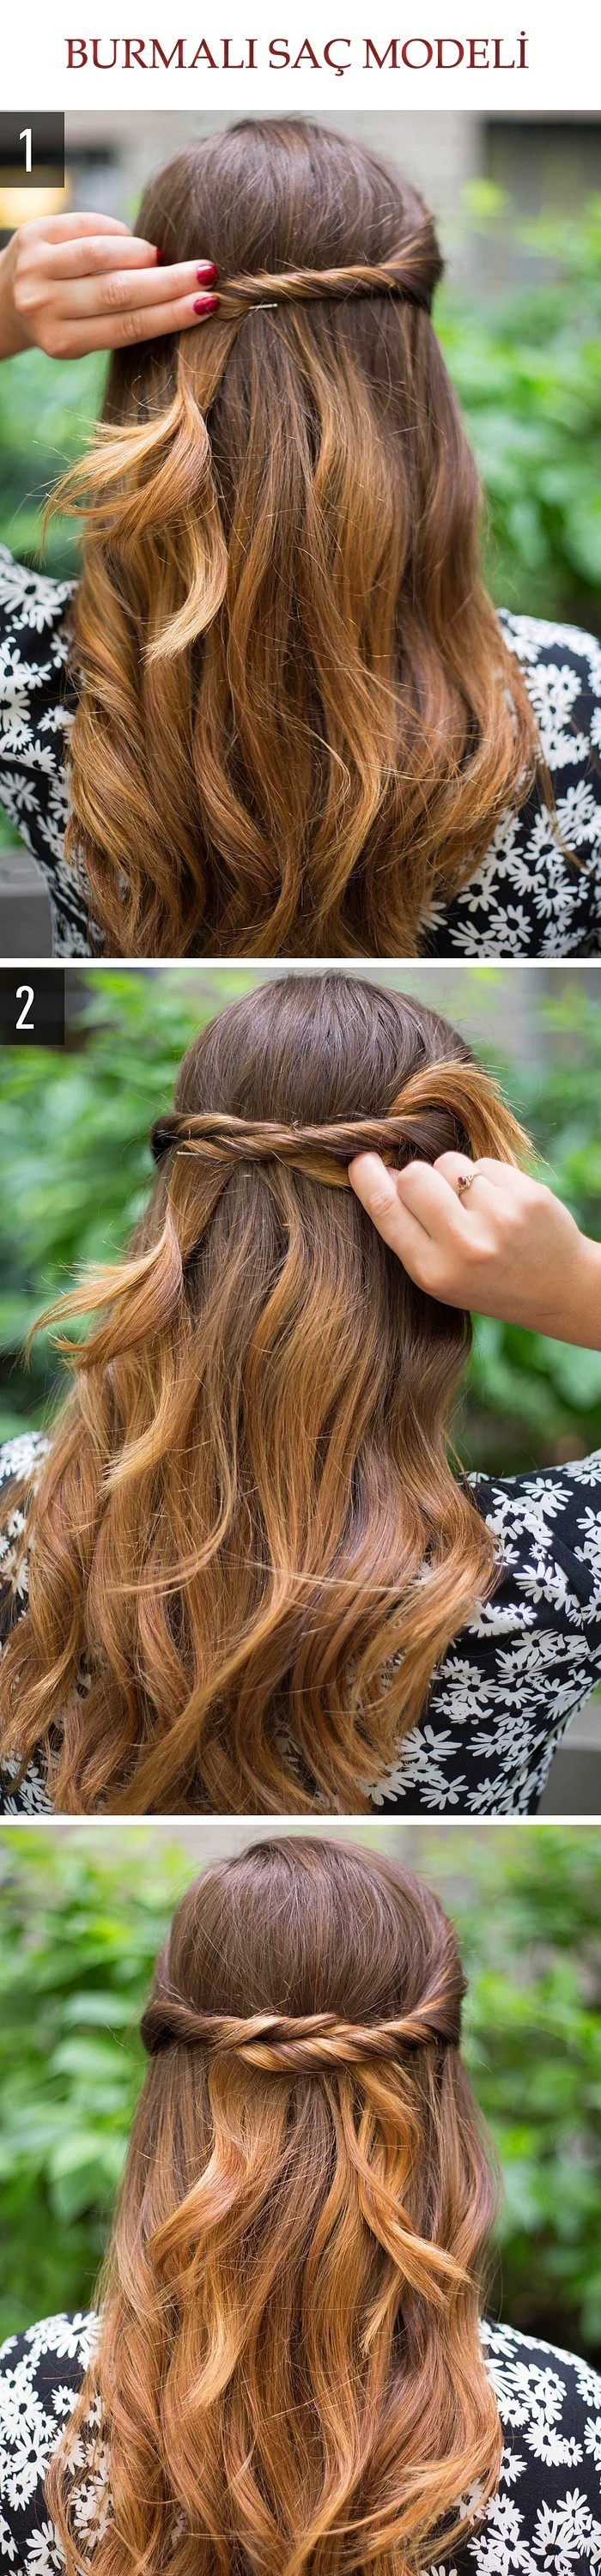 Pin by katrya almond on cute hairstyles pinterest hair style